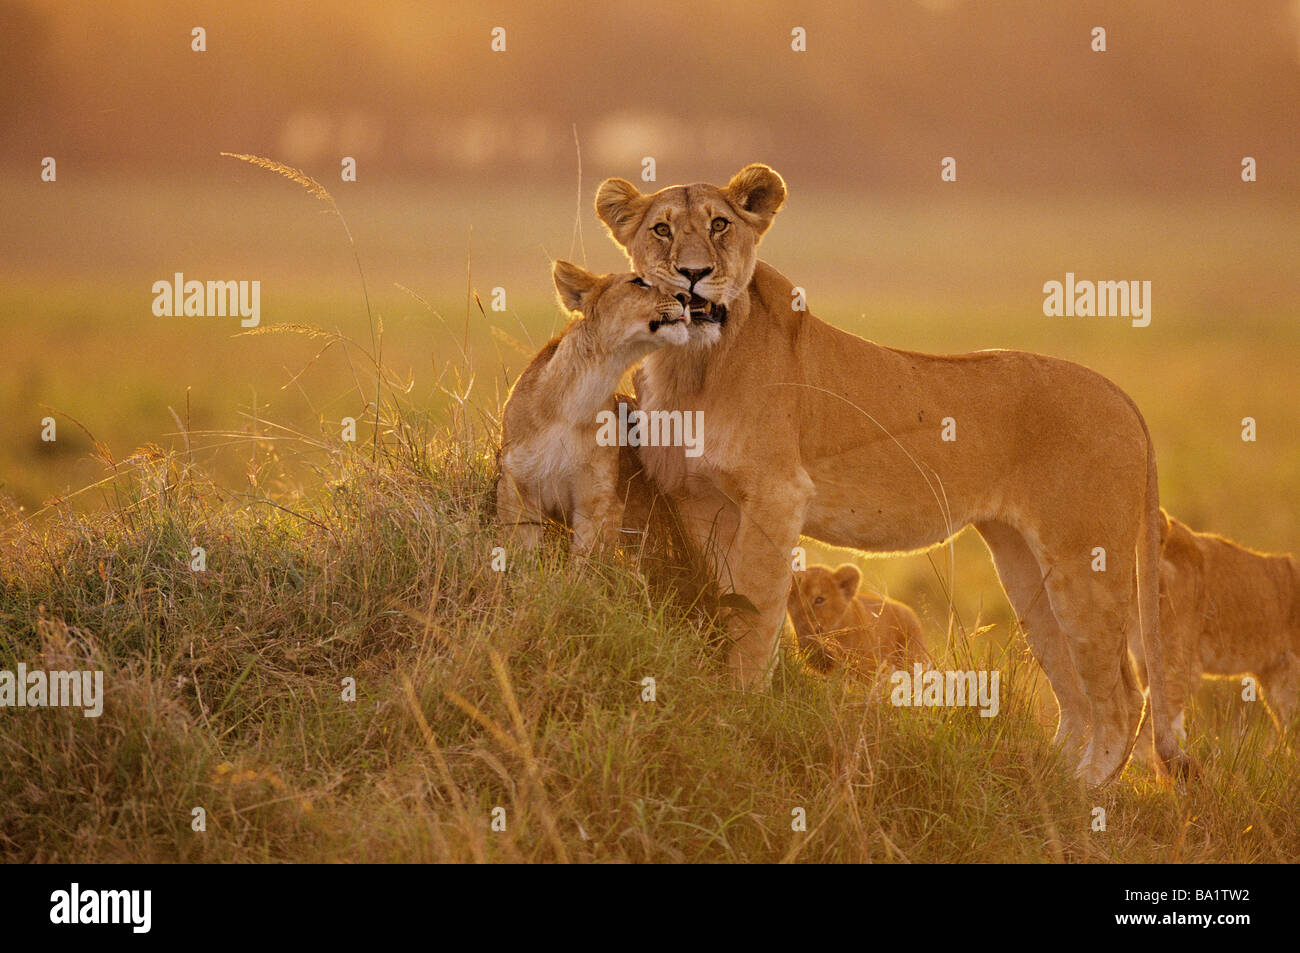 Sunset Close-up Lion Mother and Cub - Stock Image